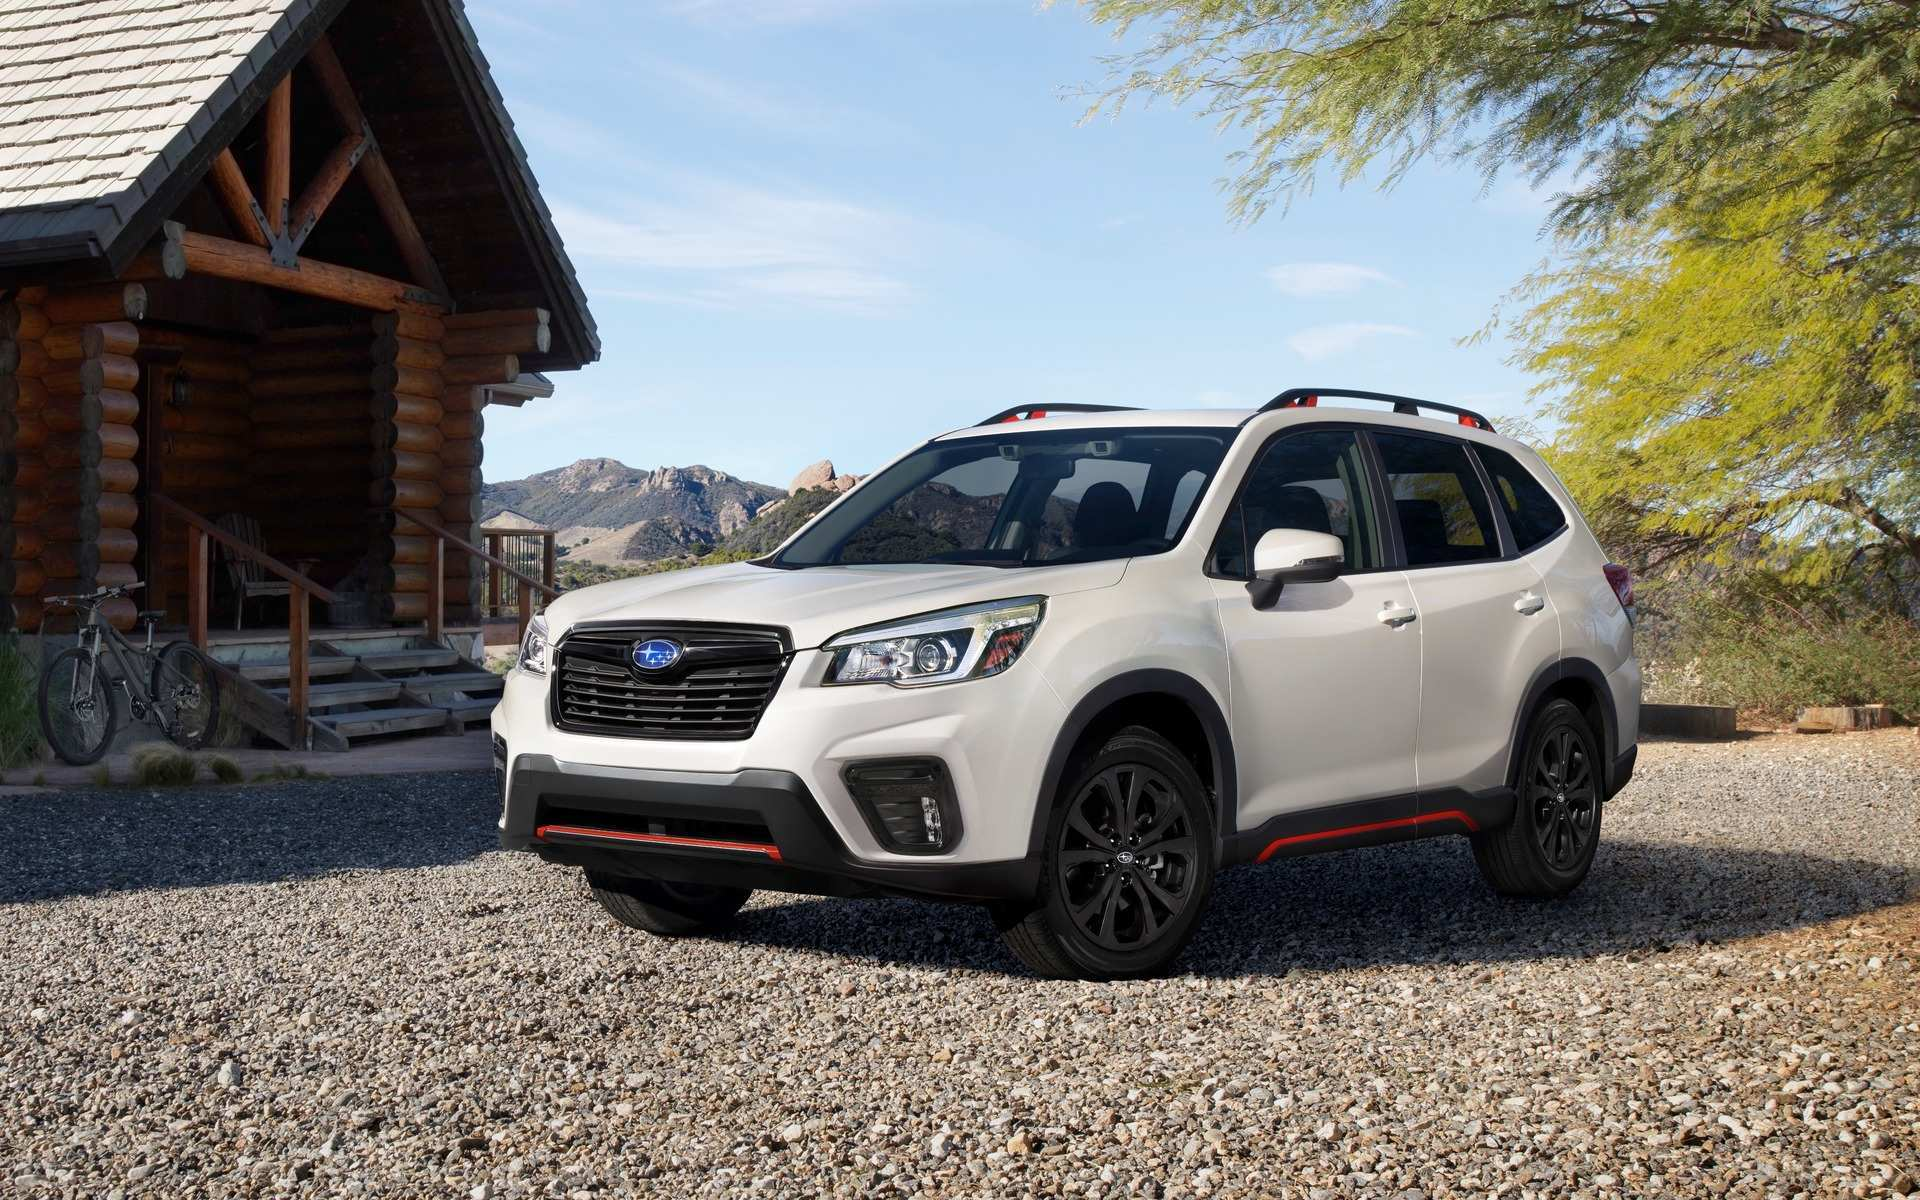 33 All New Subaru 2019 Manual Transmission Redesign Performance and New Engine with Subaru 2019 Manual Transmission Redesign